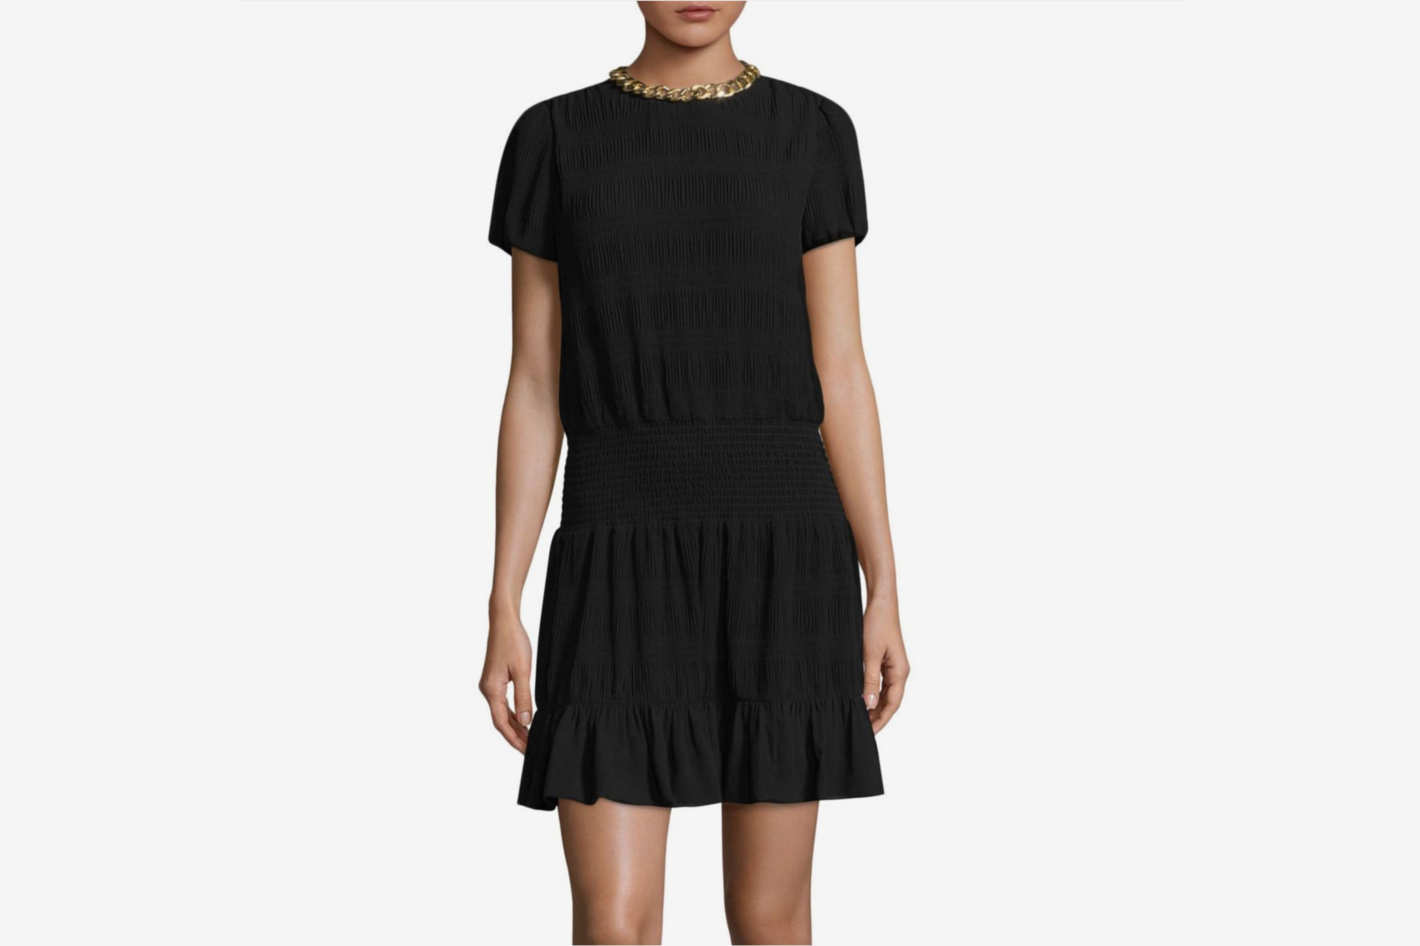 Michael by Michael Kors Chain Neck A-Line Dress